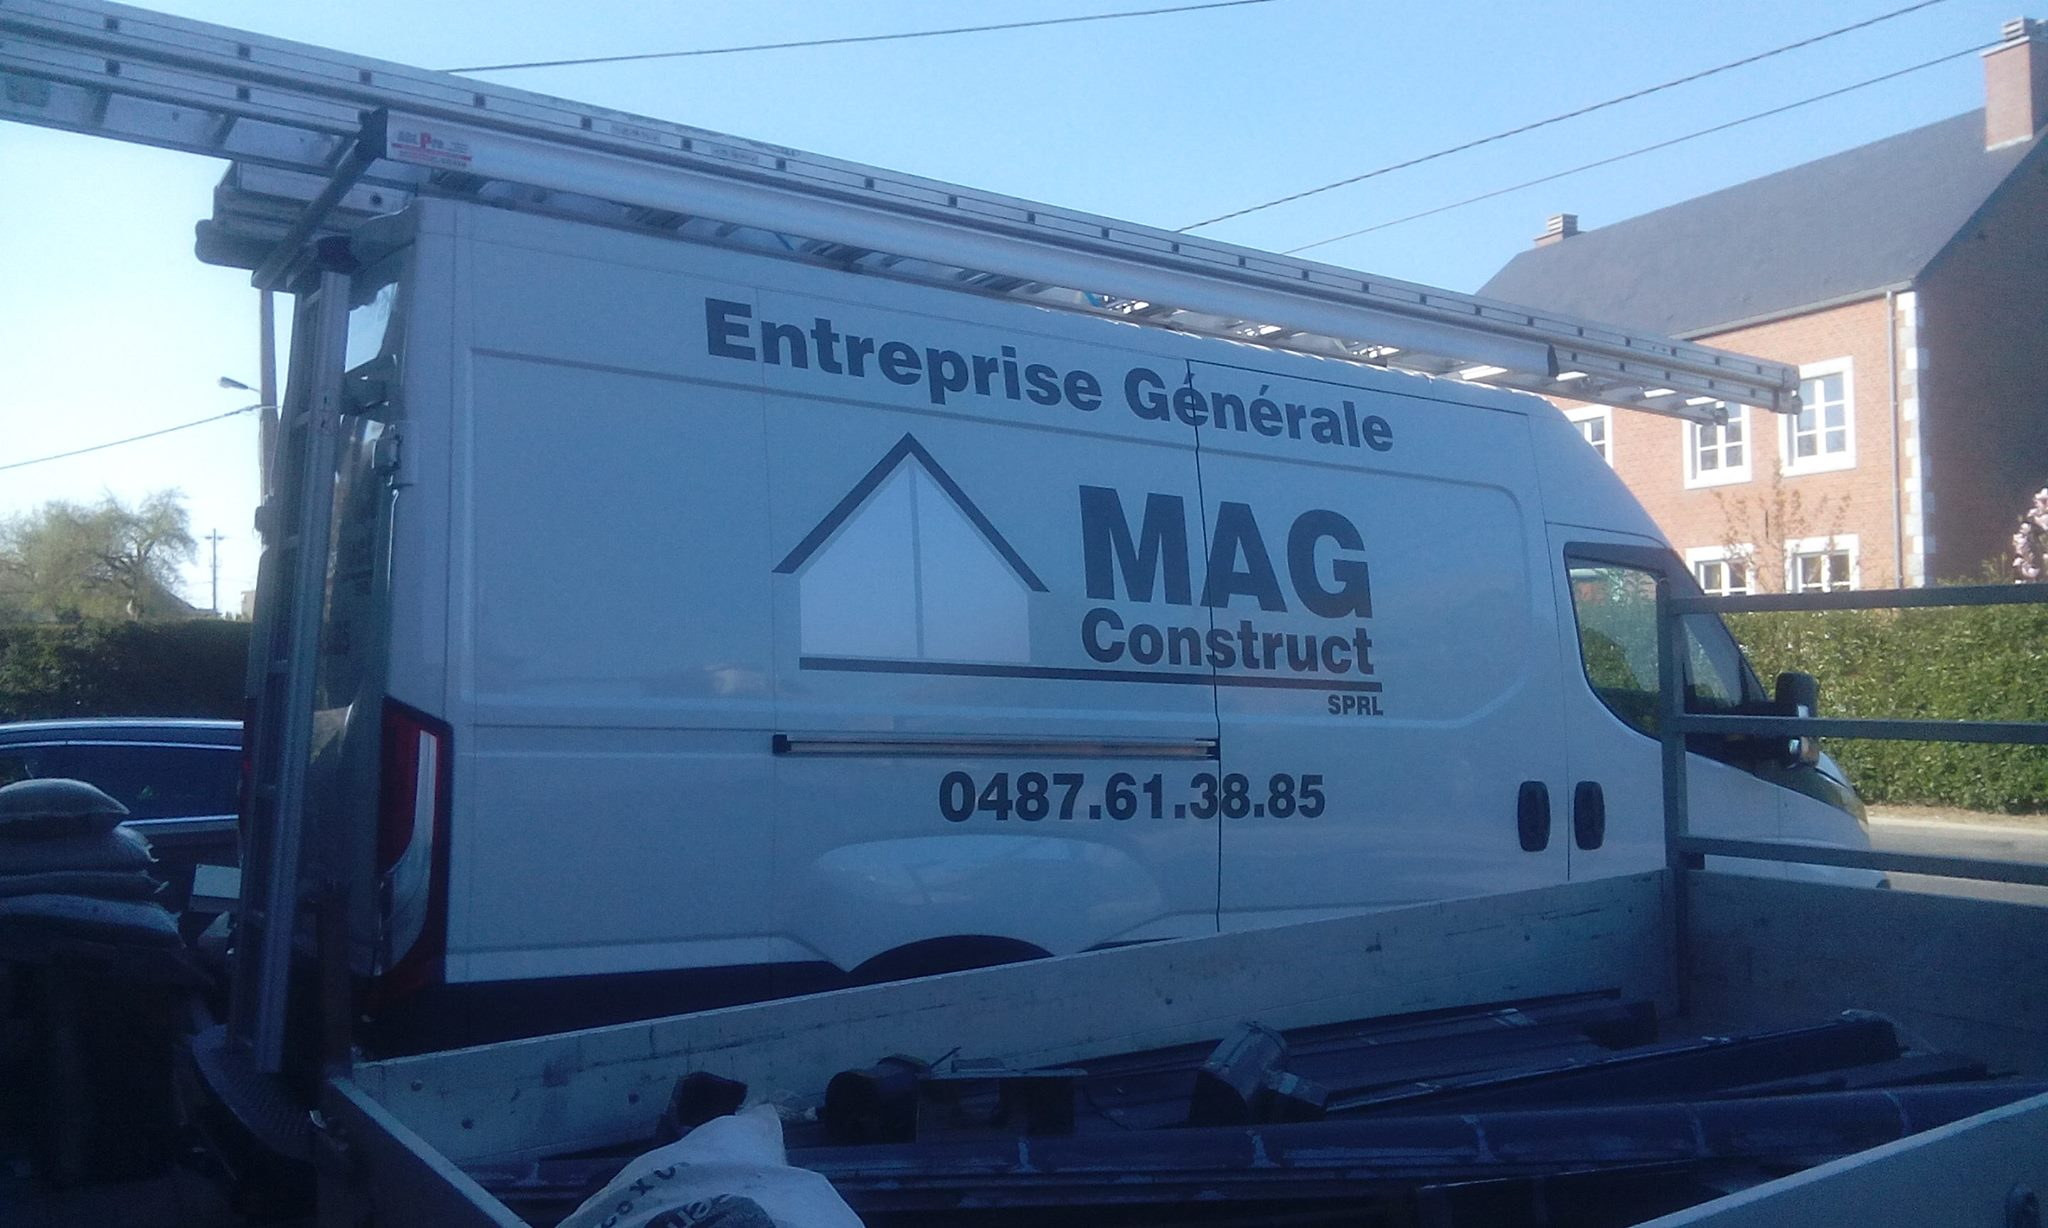 camionette Mag Construct - toiturier - couvreur